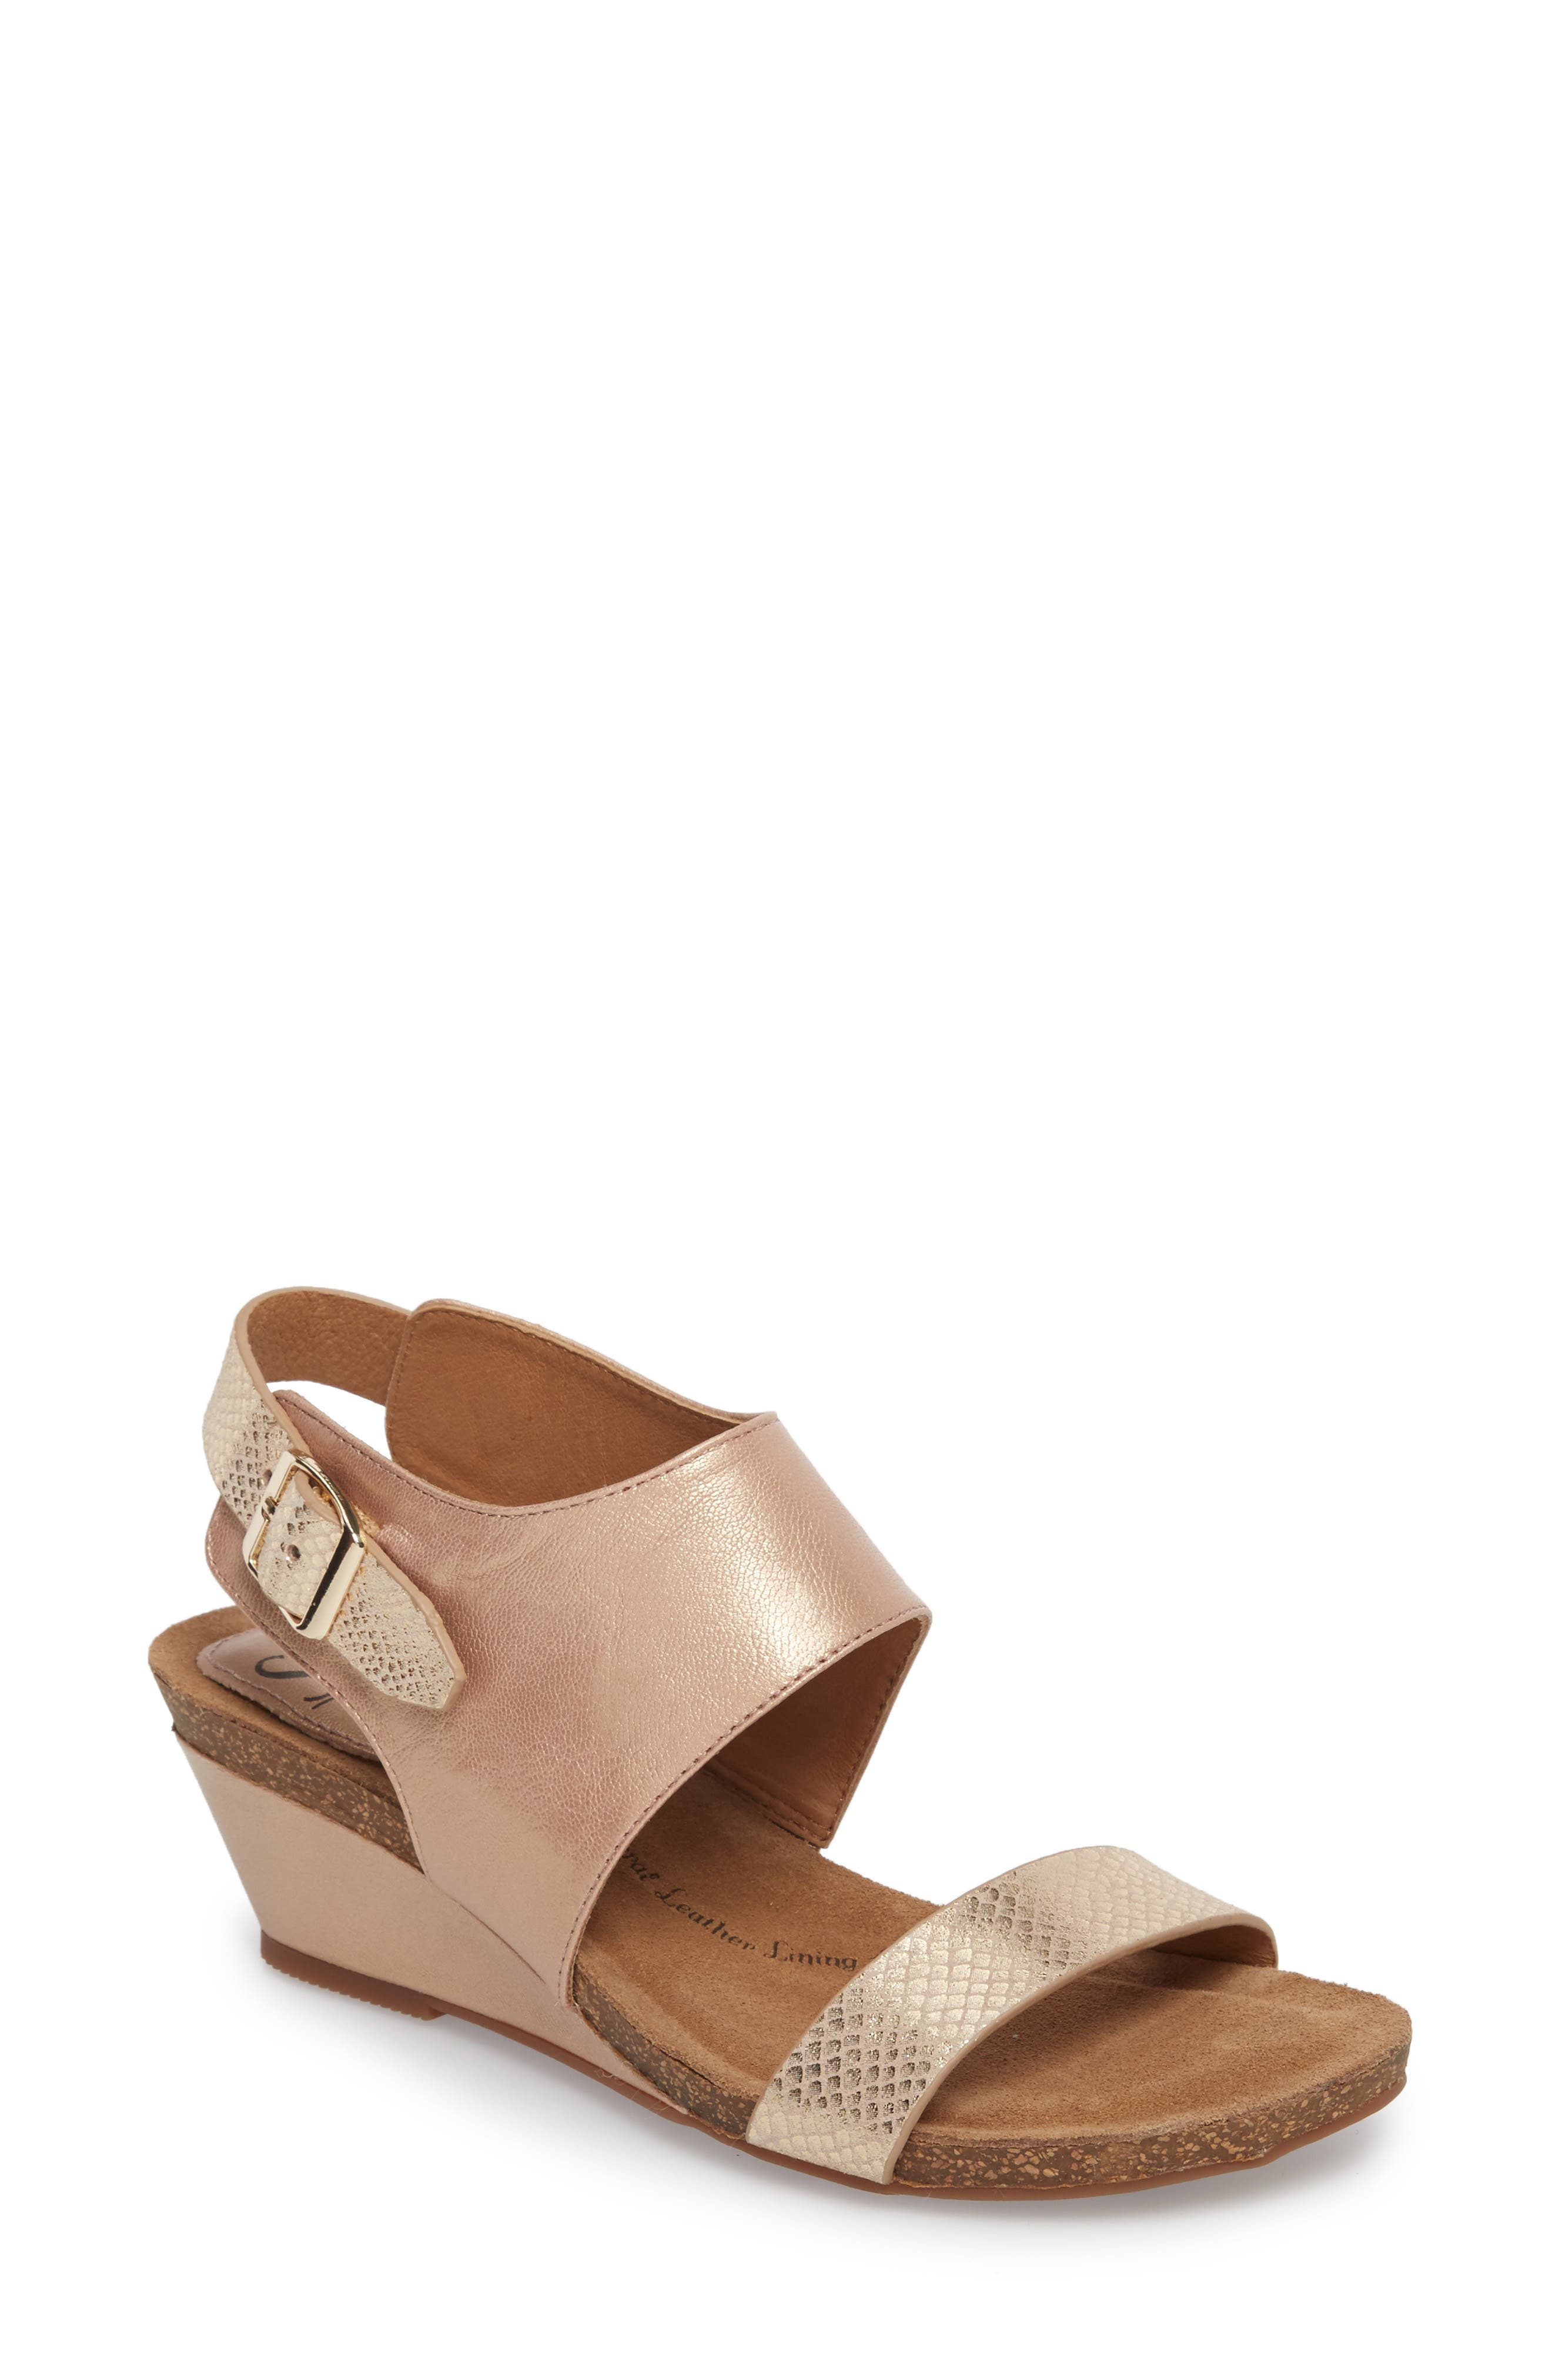 'Vanita' Leather Sandal,                         Main,                         color, CHAMPAGNE/ GOLD LEATHER